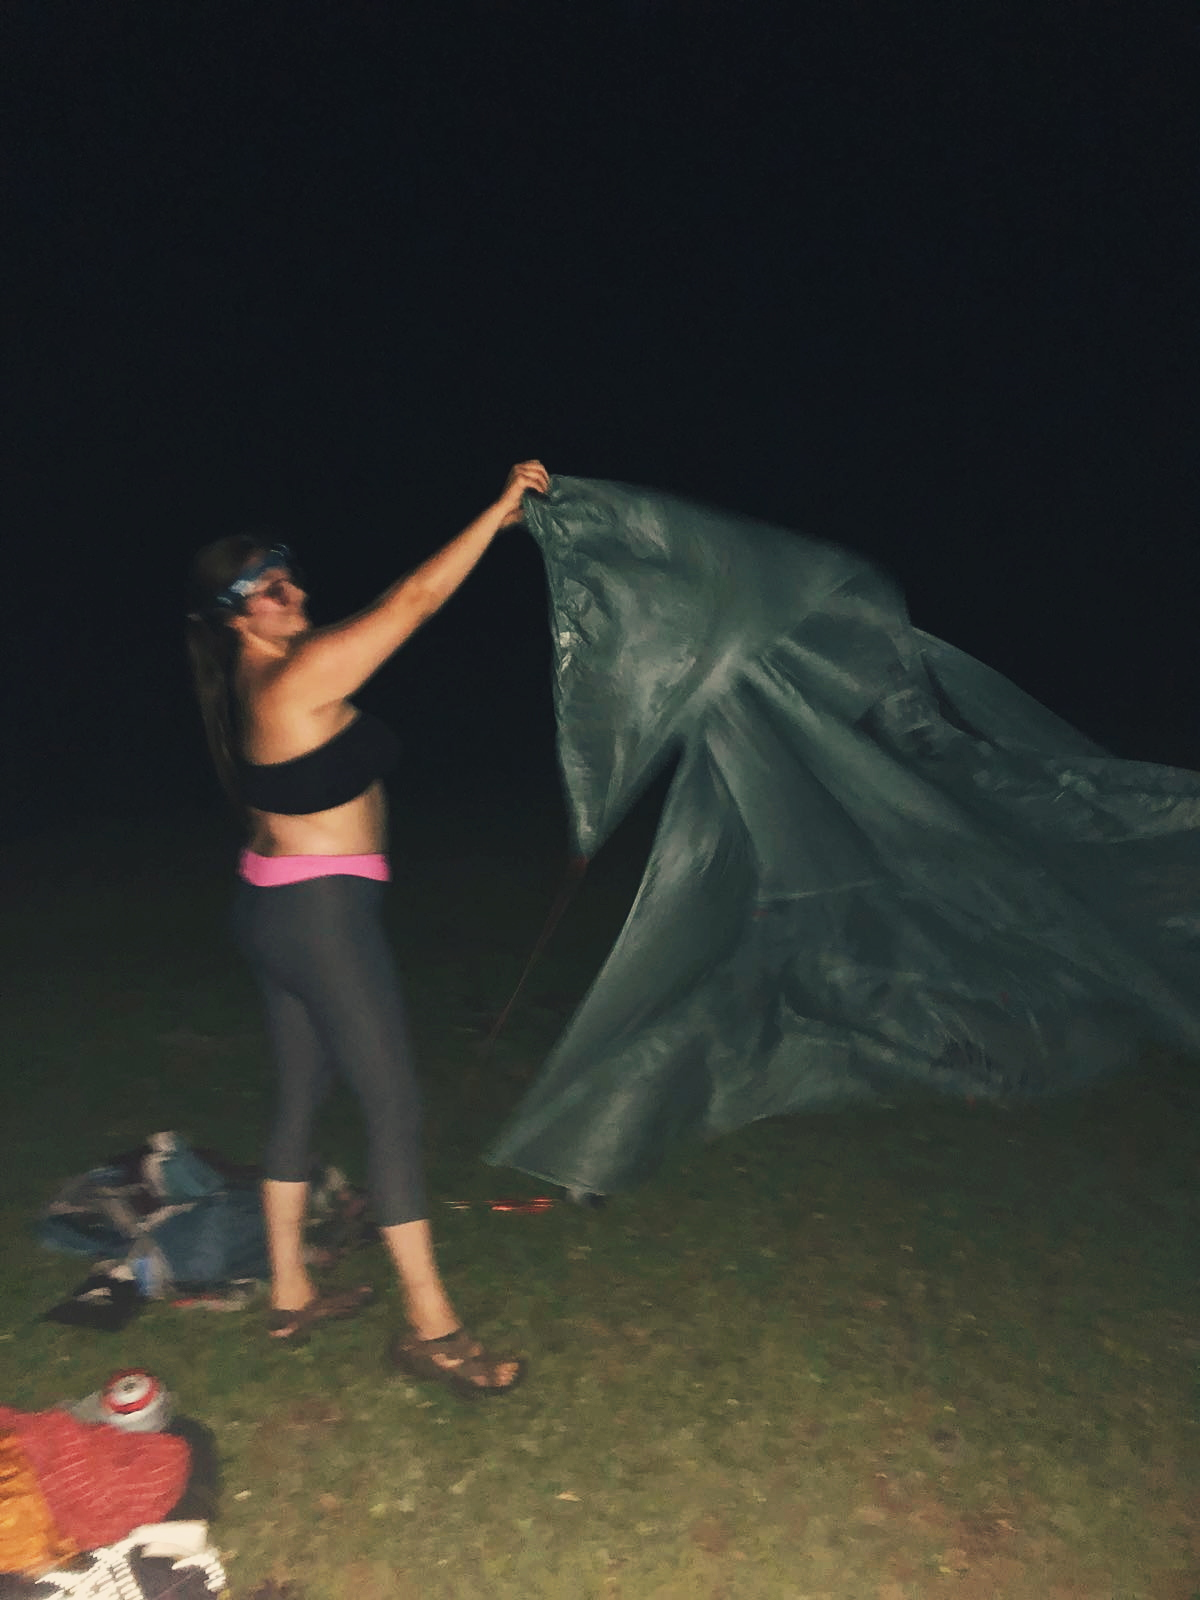 Christina gray grayt in north carolina setting up a tent in the mountains